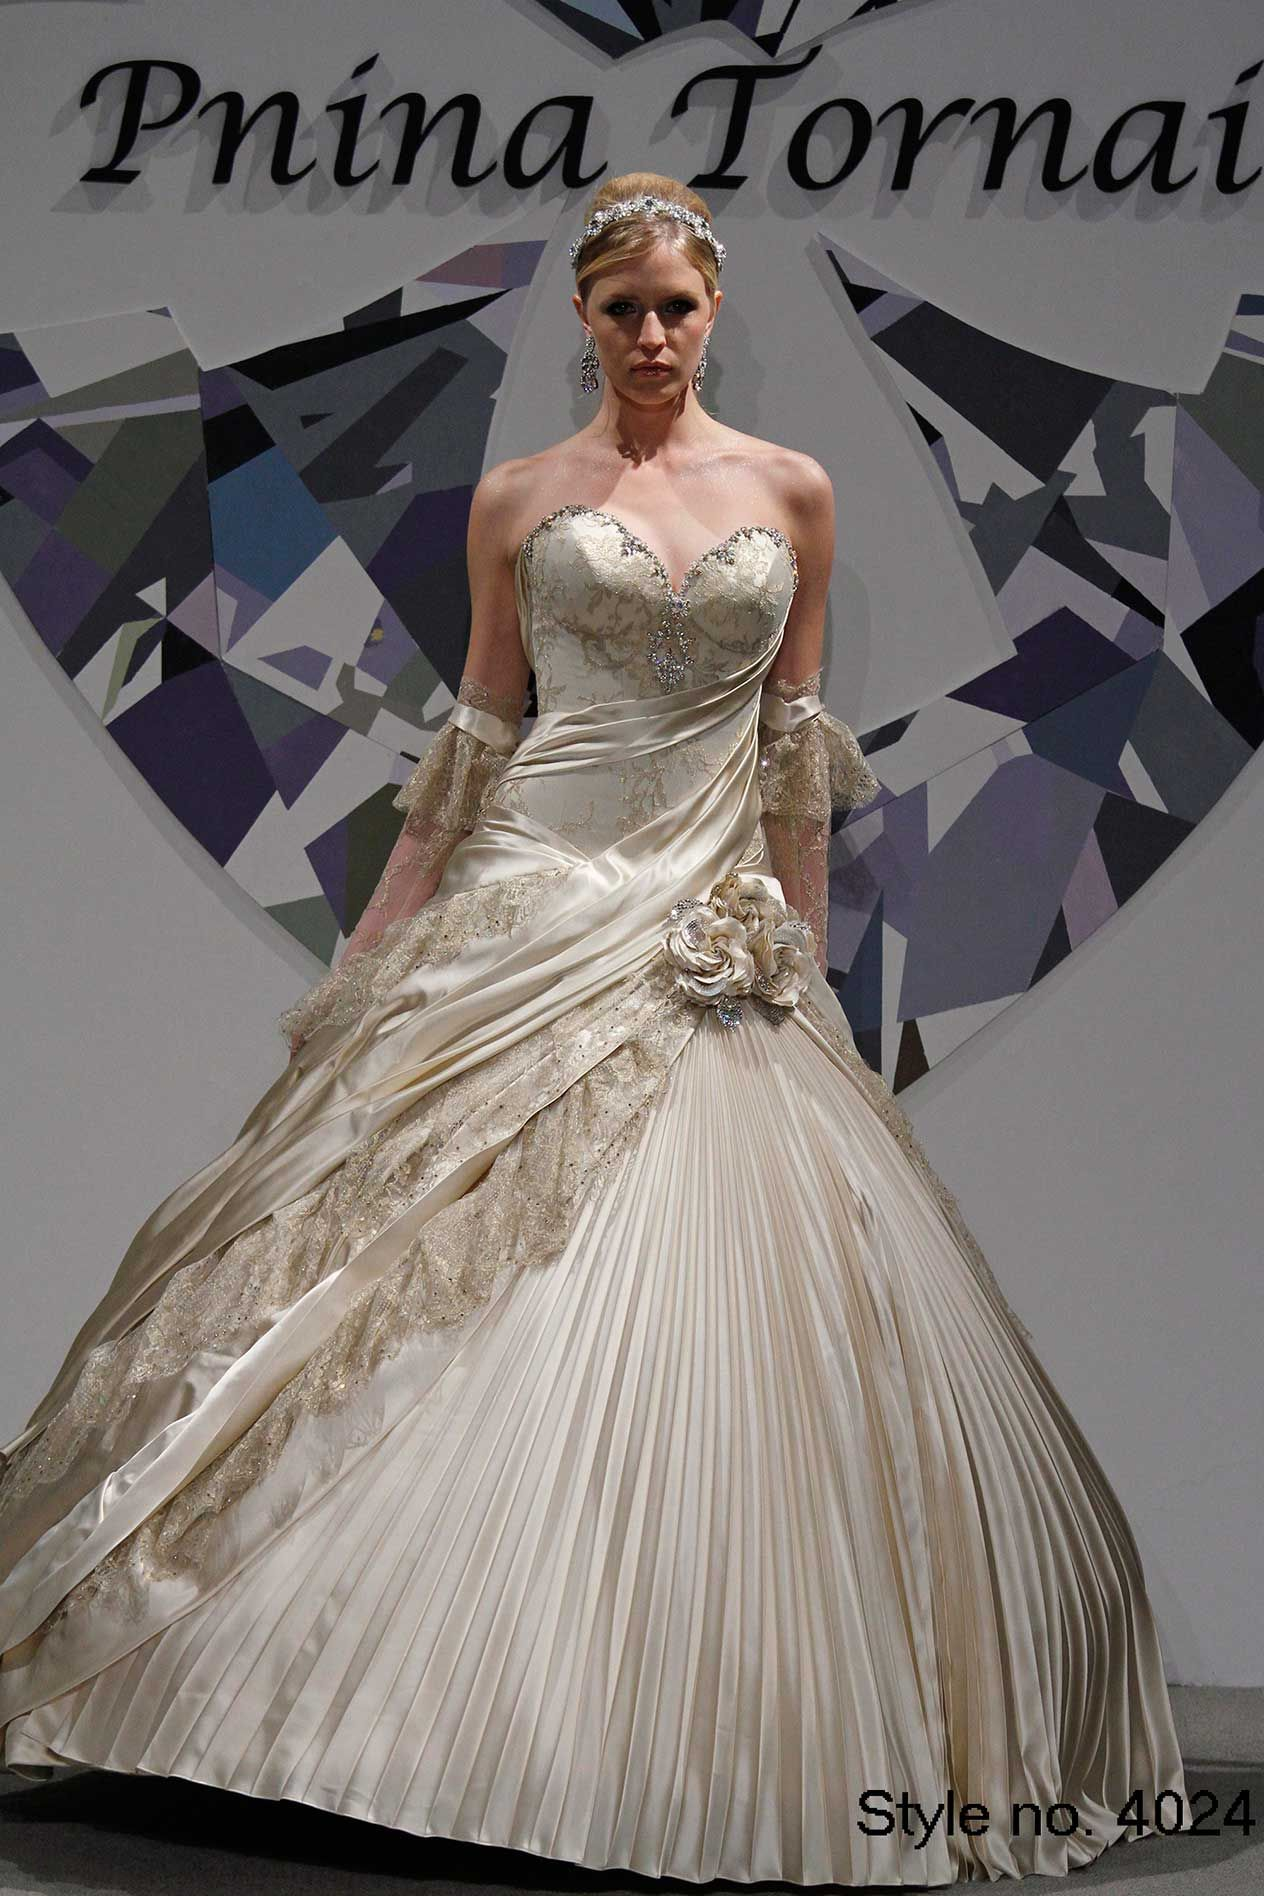 Pnina tornai white gold wedding gown, sweatheart neckline, gold and ...